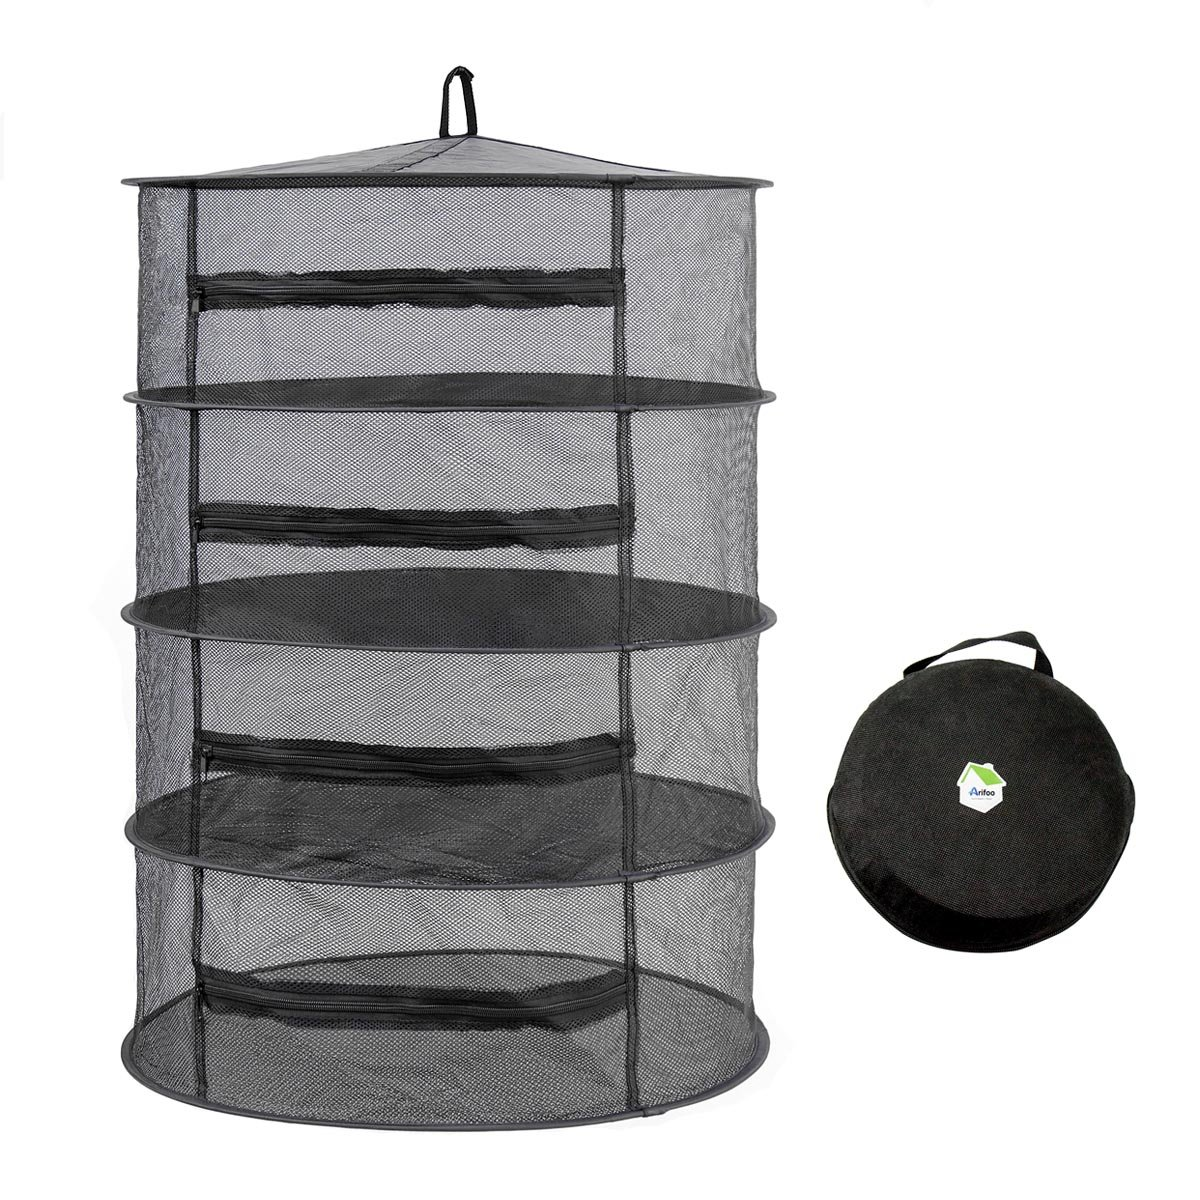 Arifoo Herb Drying Rack Hanging Drying Racks 4 Layer Collapsible Herb Drying Rack Hanging with Zipper Design (Black) by Arifoo